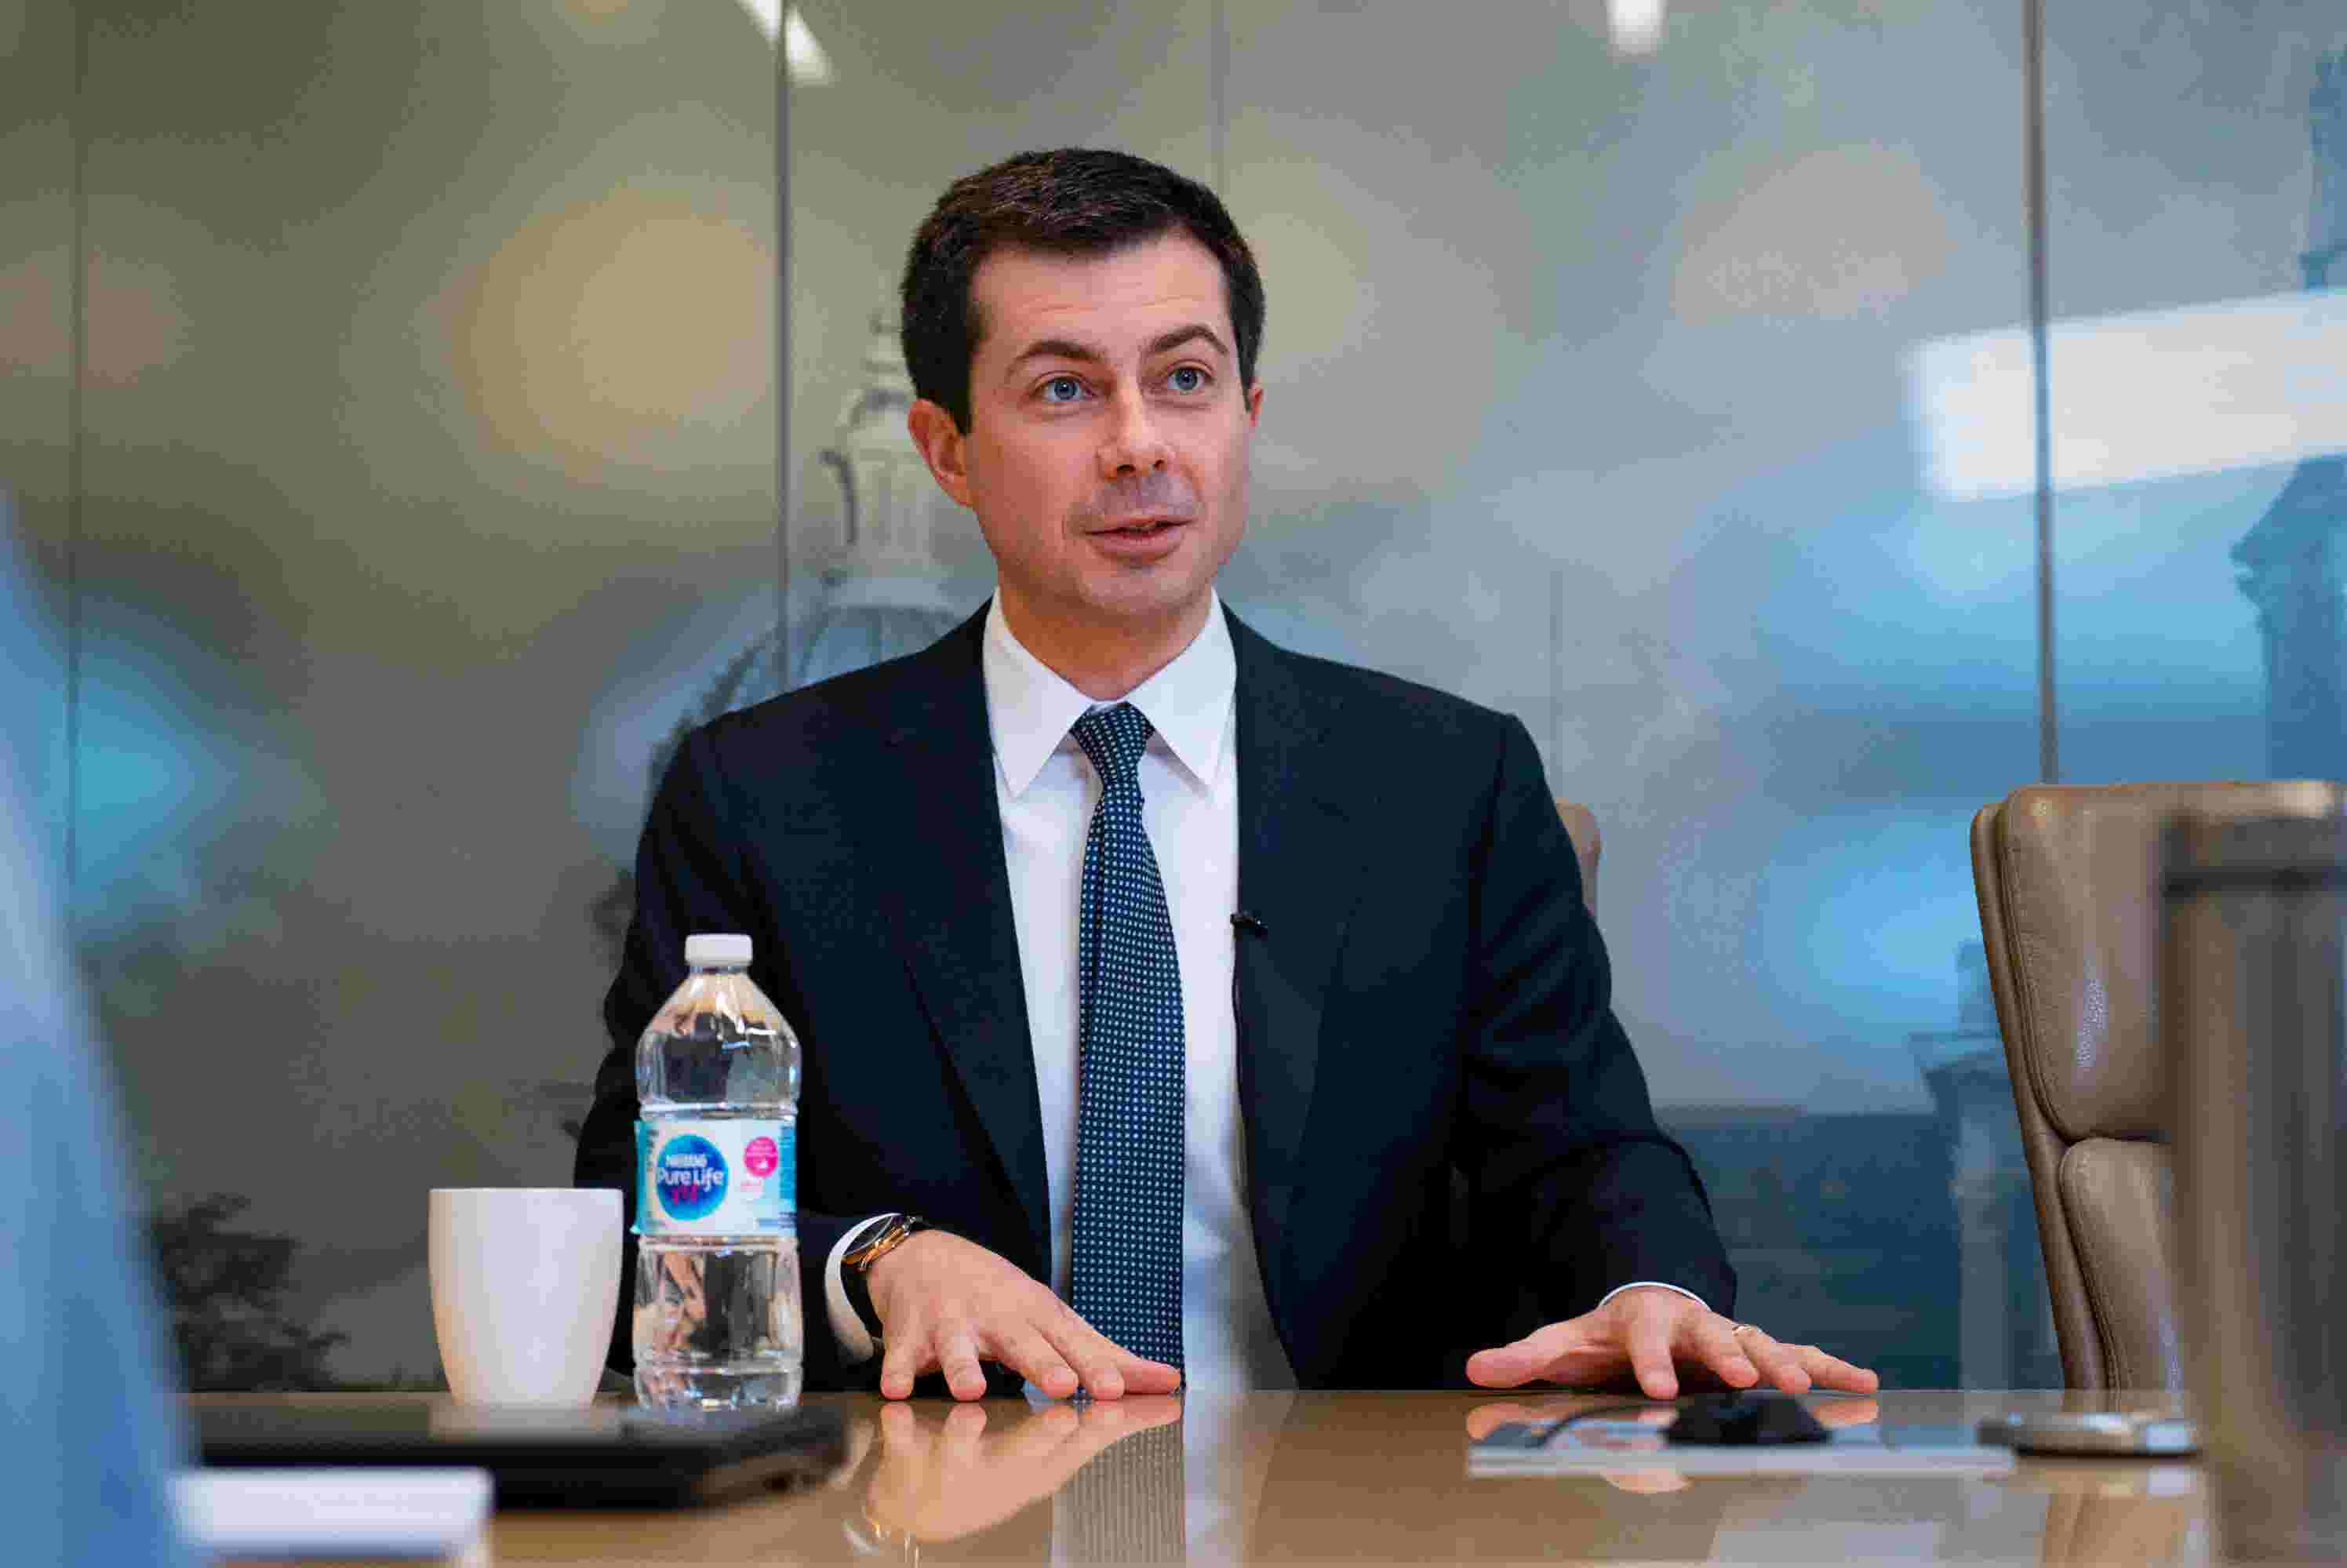 Watch: Pete Buttigieg meets with the Register's editorial board